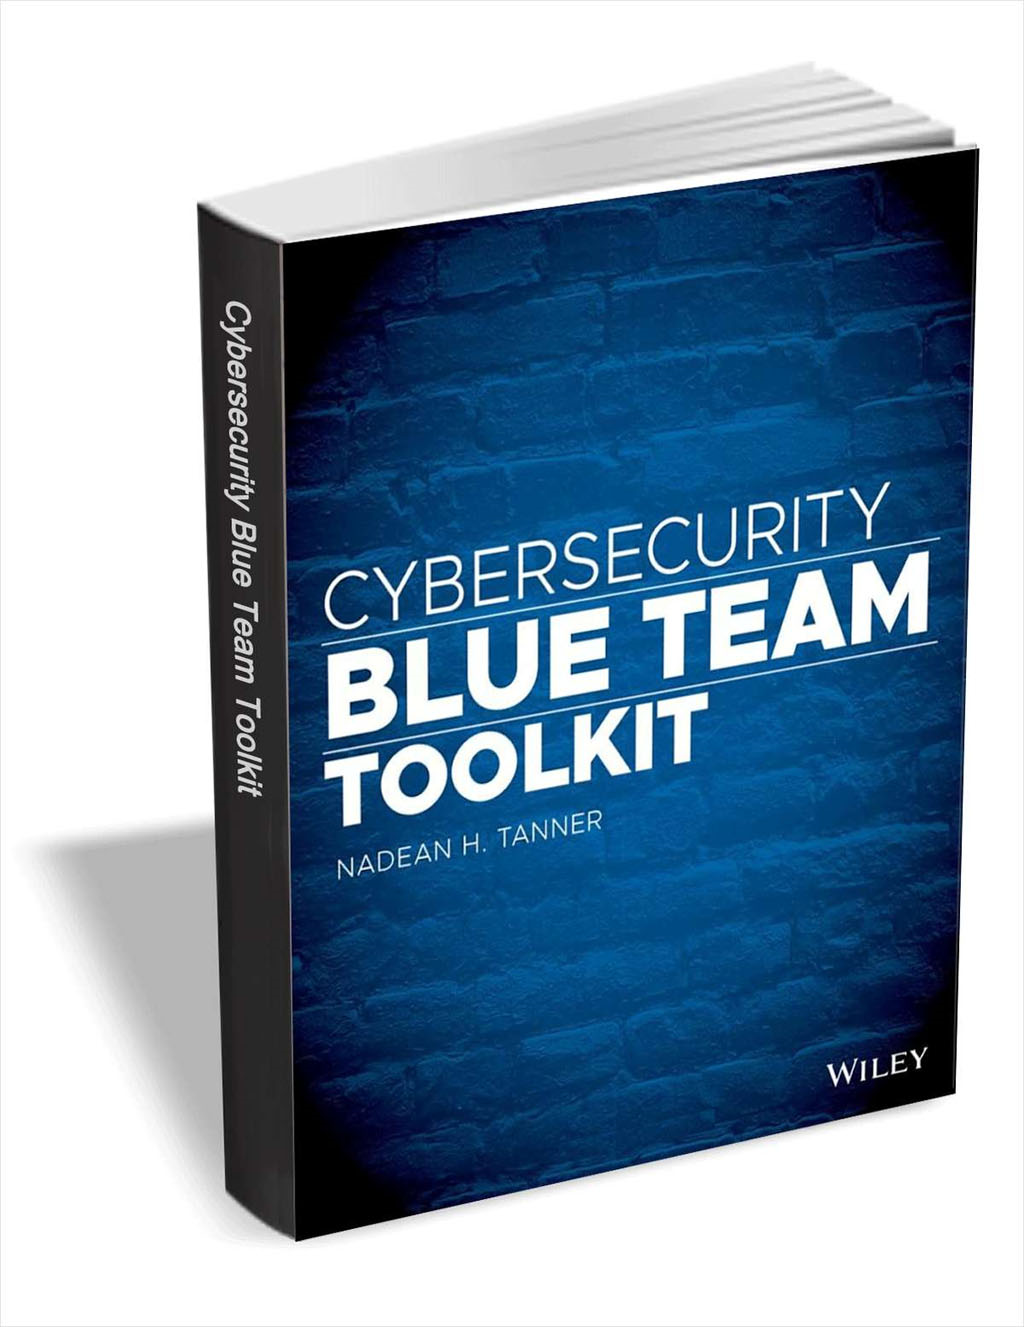 Cybersecurity Blue Team Toolkit ($26.99 Value) FREE for a Limited Time Screenshot